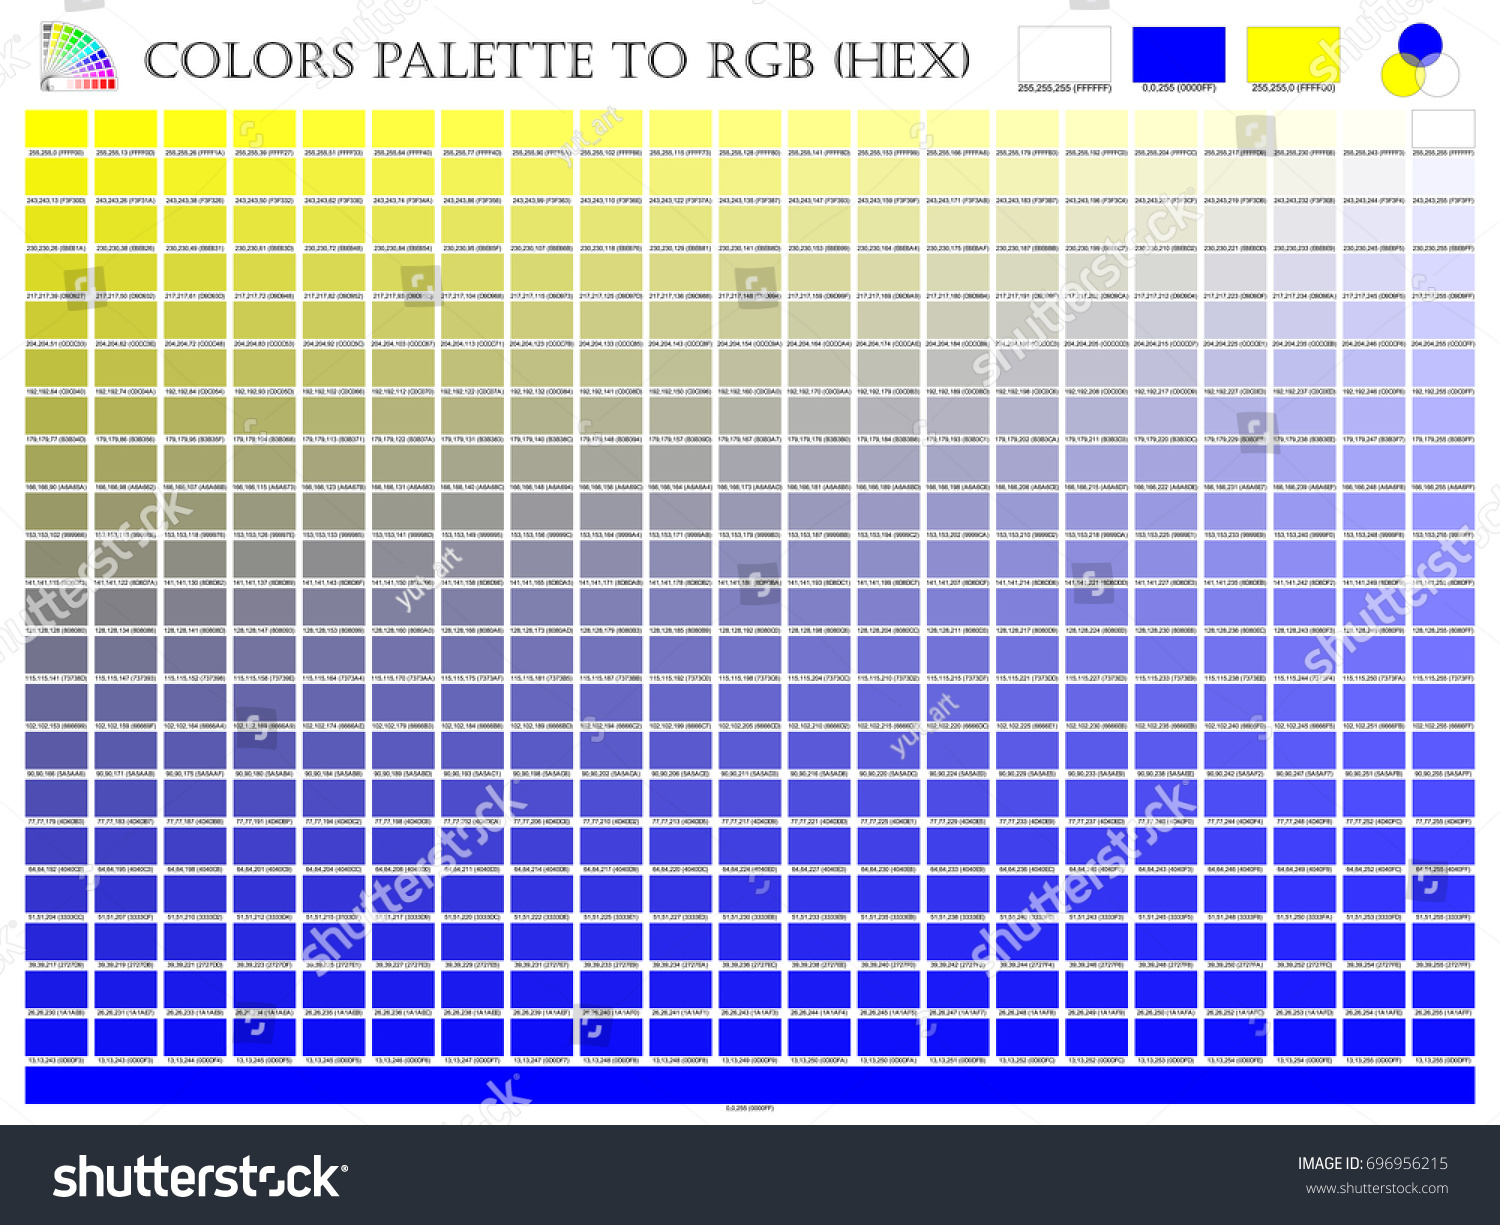 Color palette mixer 3 color yellow stock vector 696956215 shutterstock color palette mixer 3 color yellow white and blue rgb mode in composition geenschuldenfo Image collections